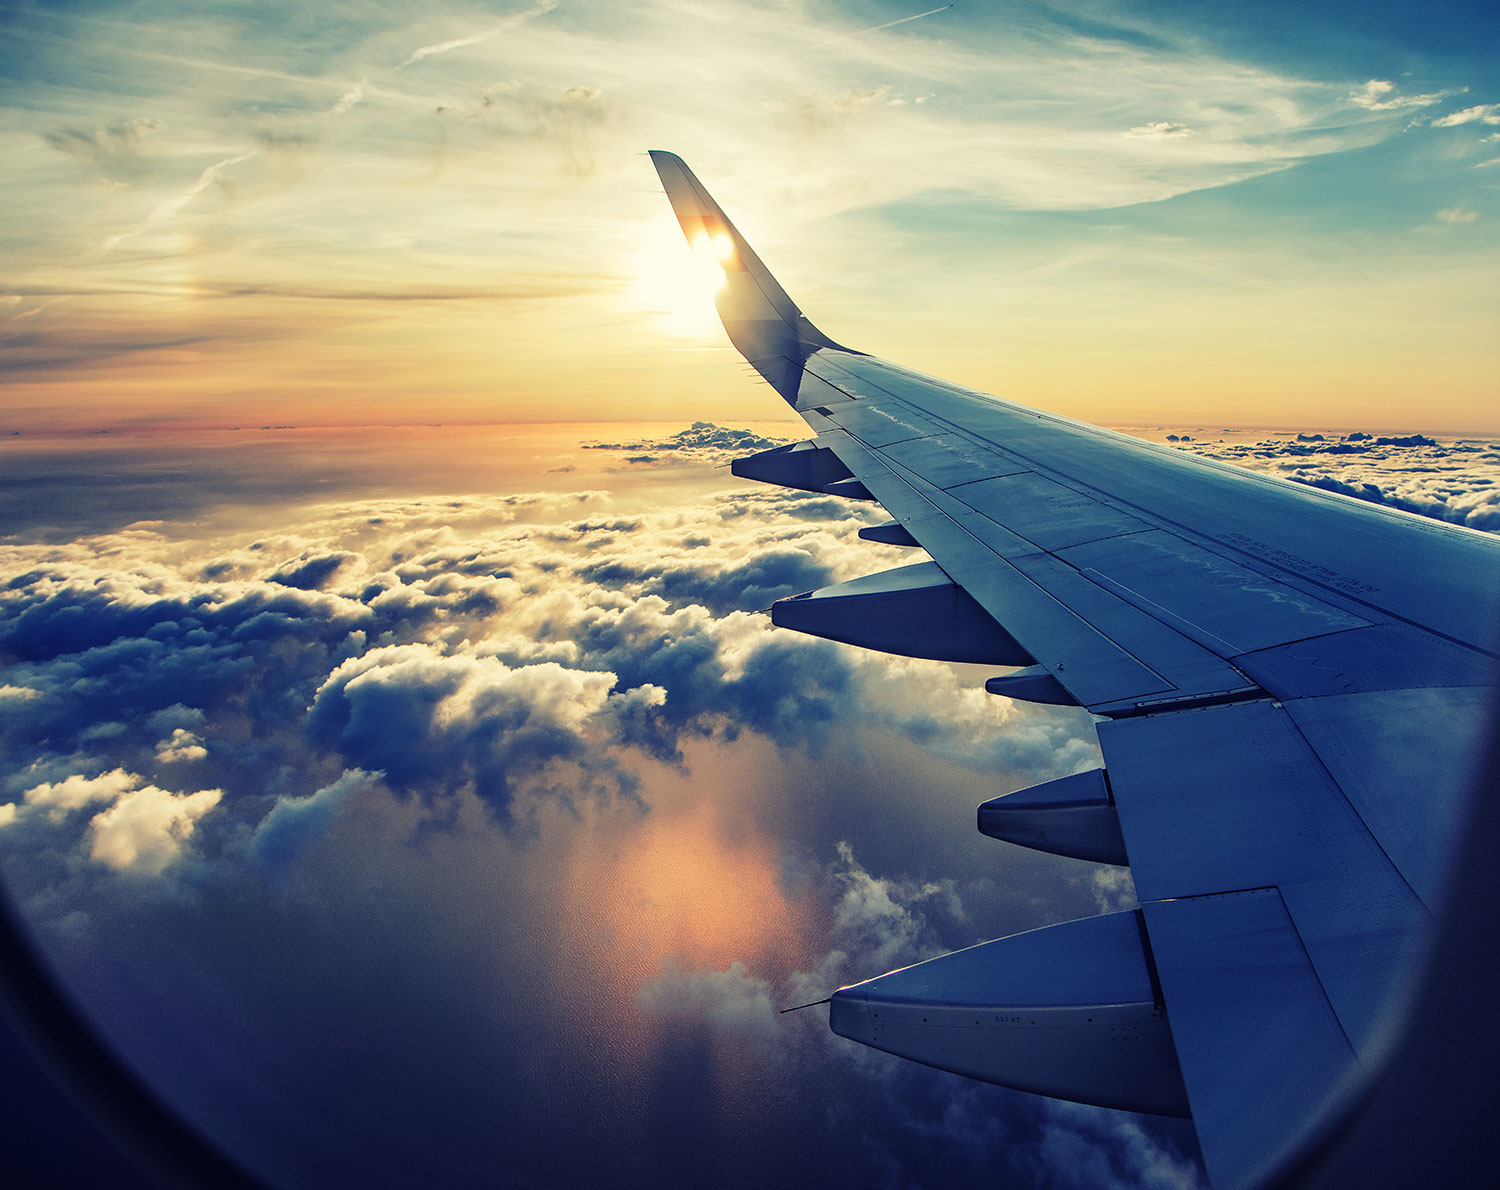 Aeroplane flying above the clouds – money transfers for moving abroad. International payments for moving overseas and emigrating, including regular overseas payments.